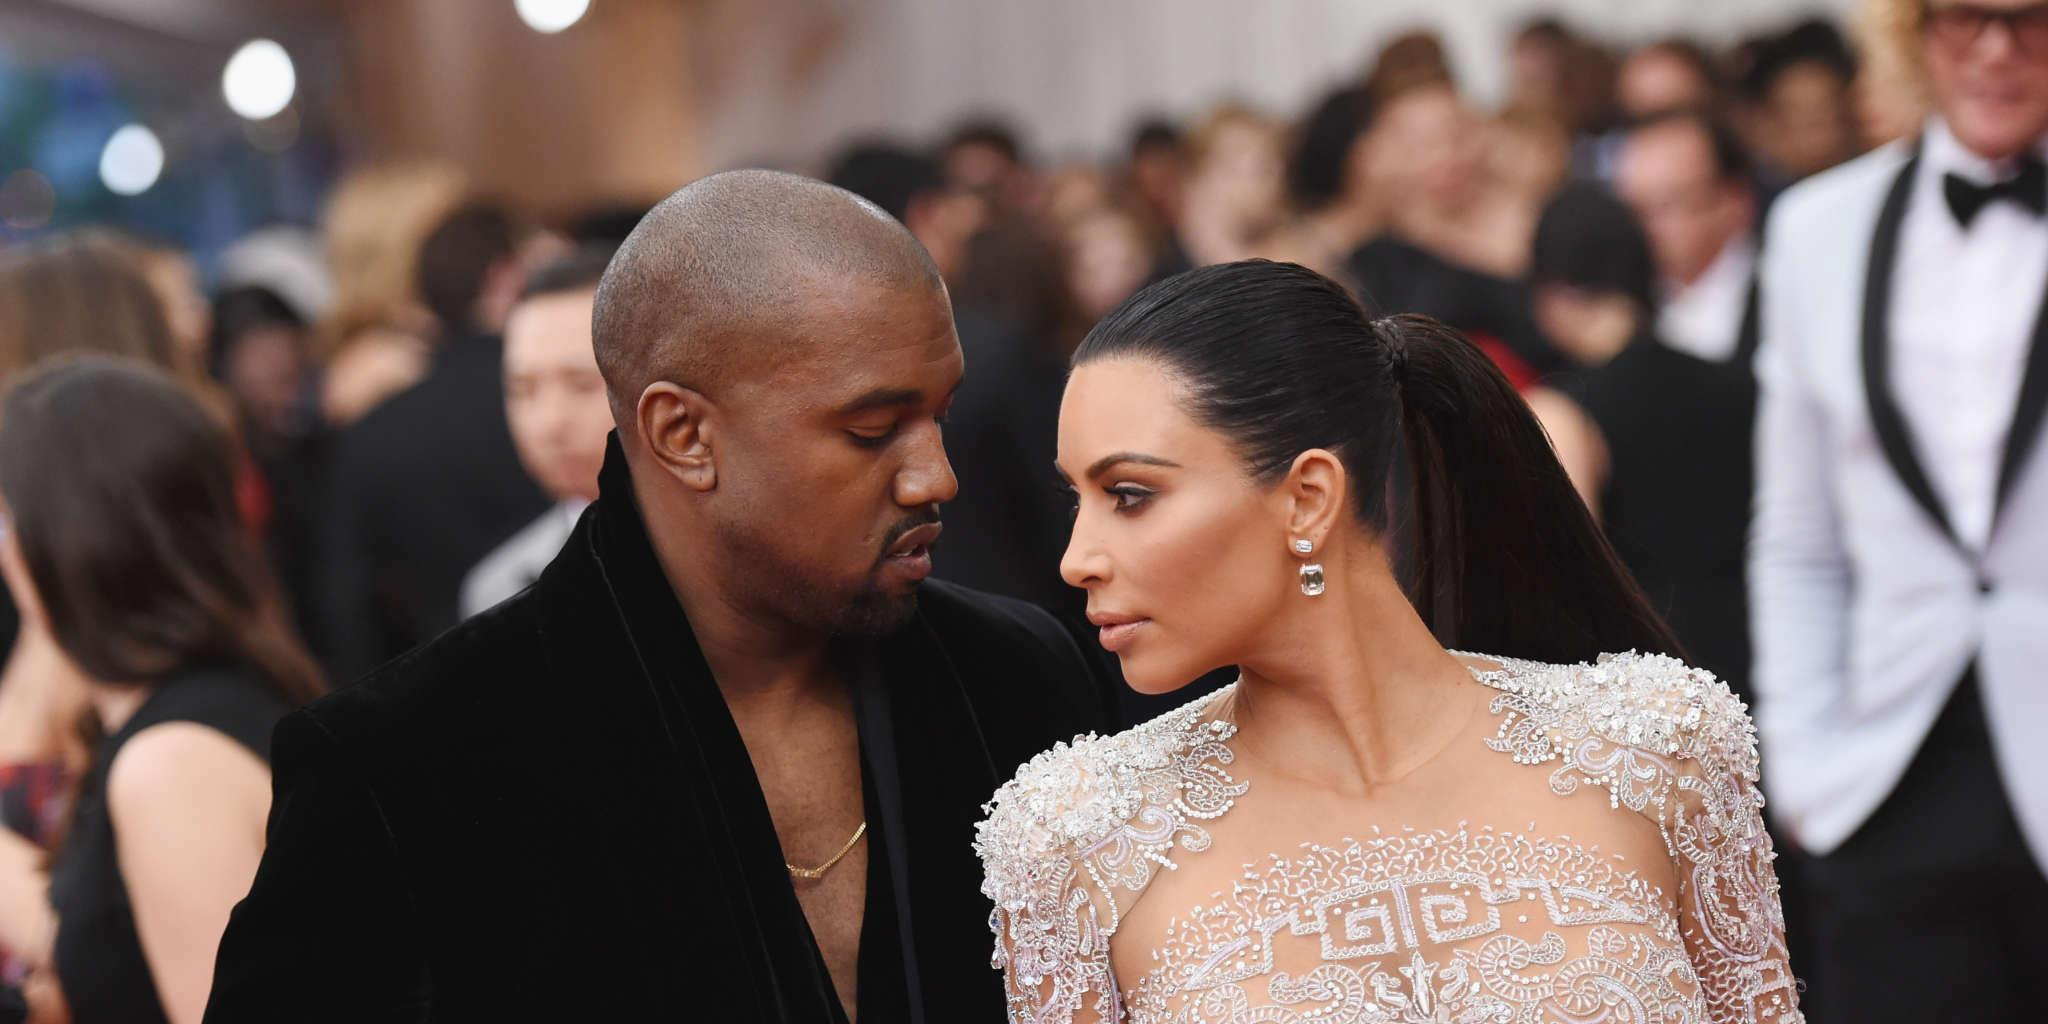 KUWK: Kim Kardashian Recalls How 'Freaked Out' She Was Over Being Pregnant With North And How Kanye West Calmed Her Down